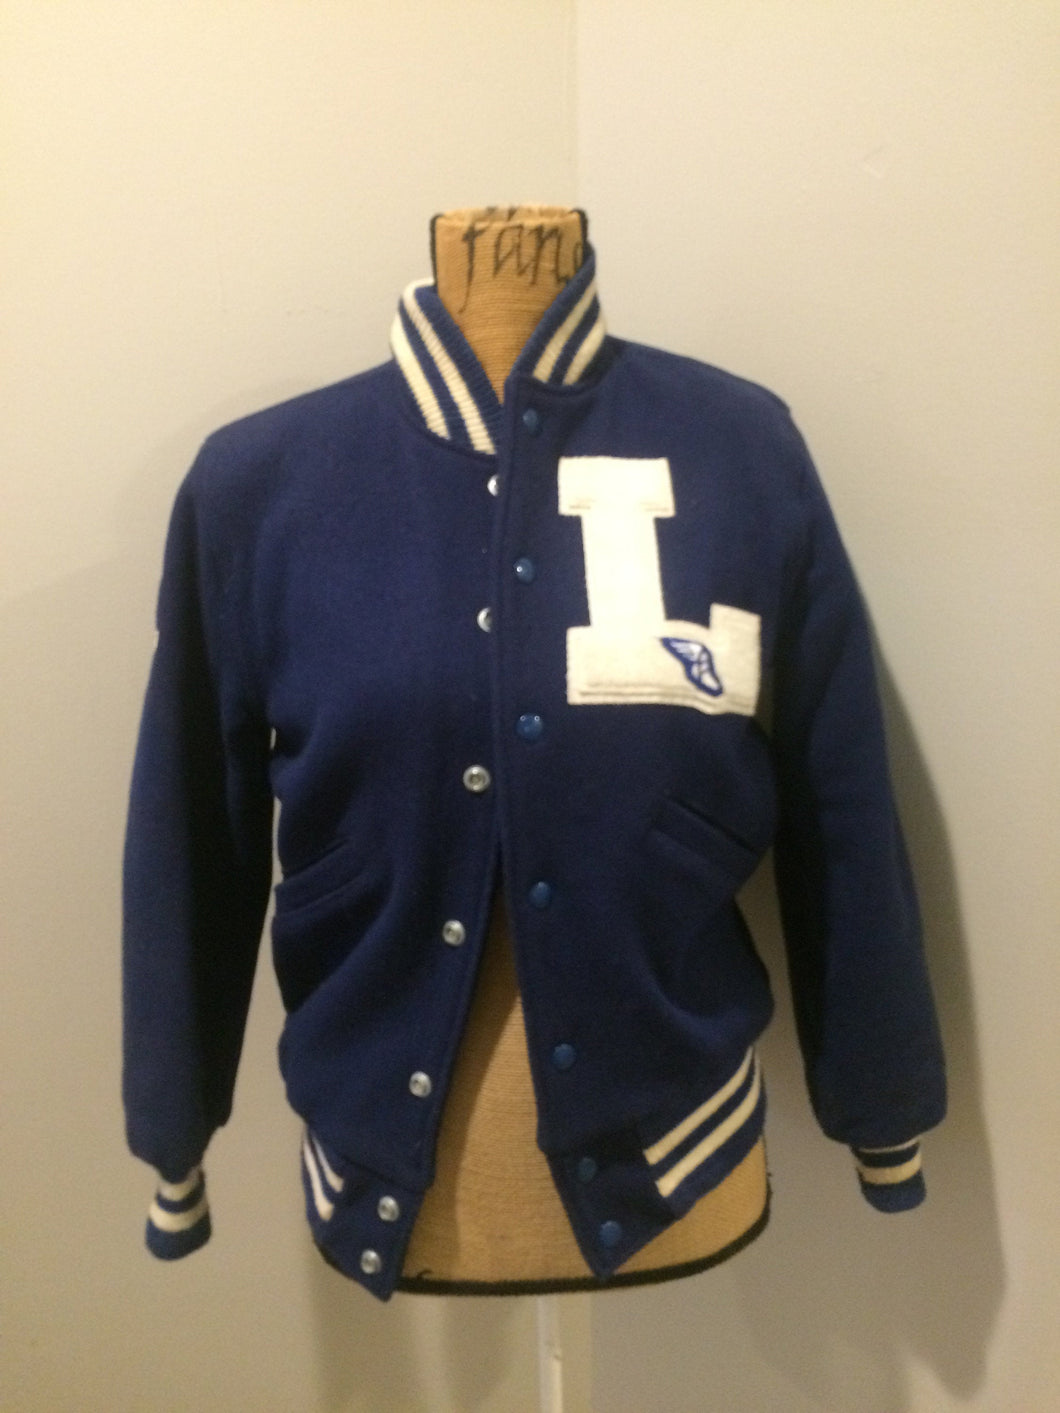 "Vintage 1950's Butwin Blue/White Wool Varsity Jacket ""Dartmouth Lakers"" (size 34). Made in Canada"